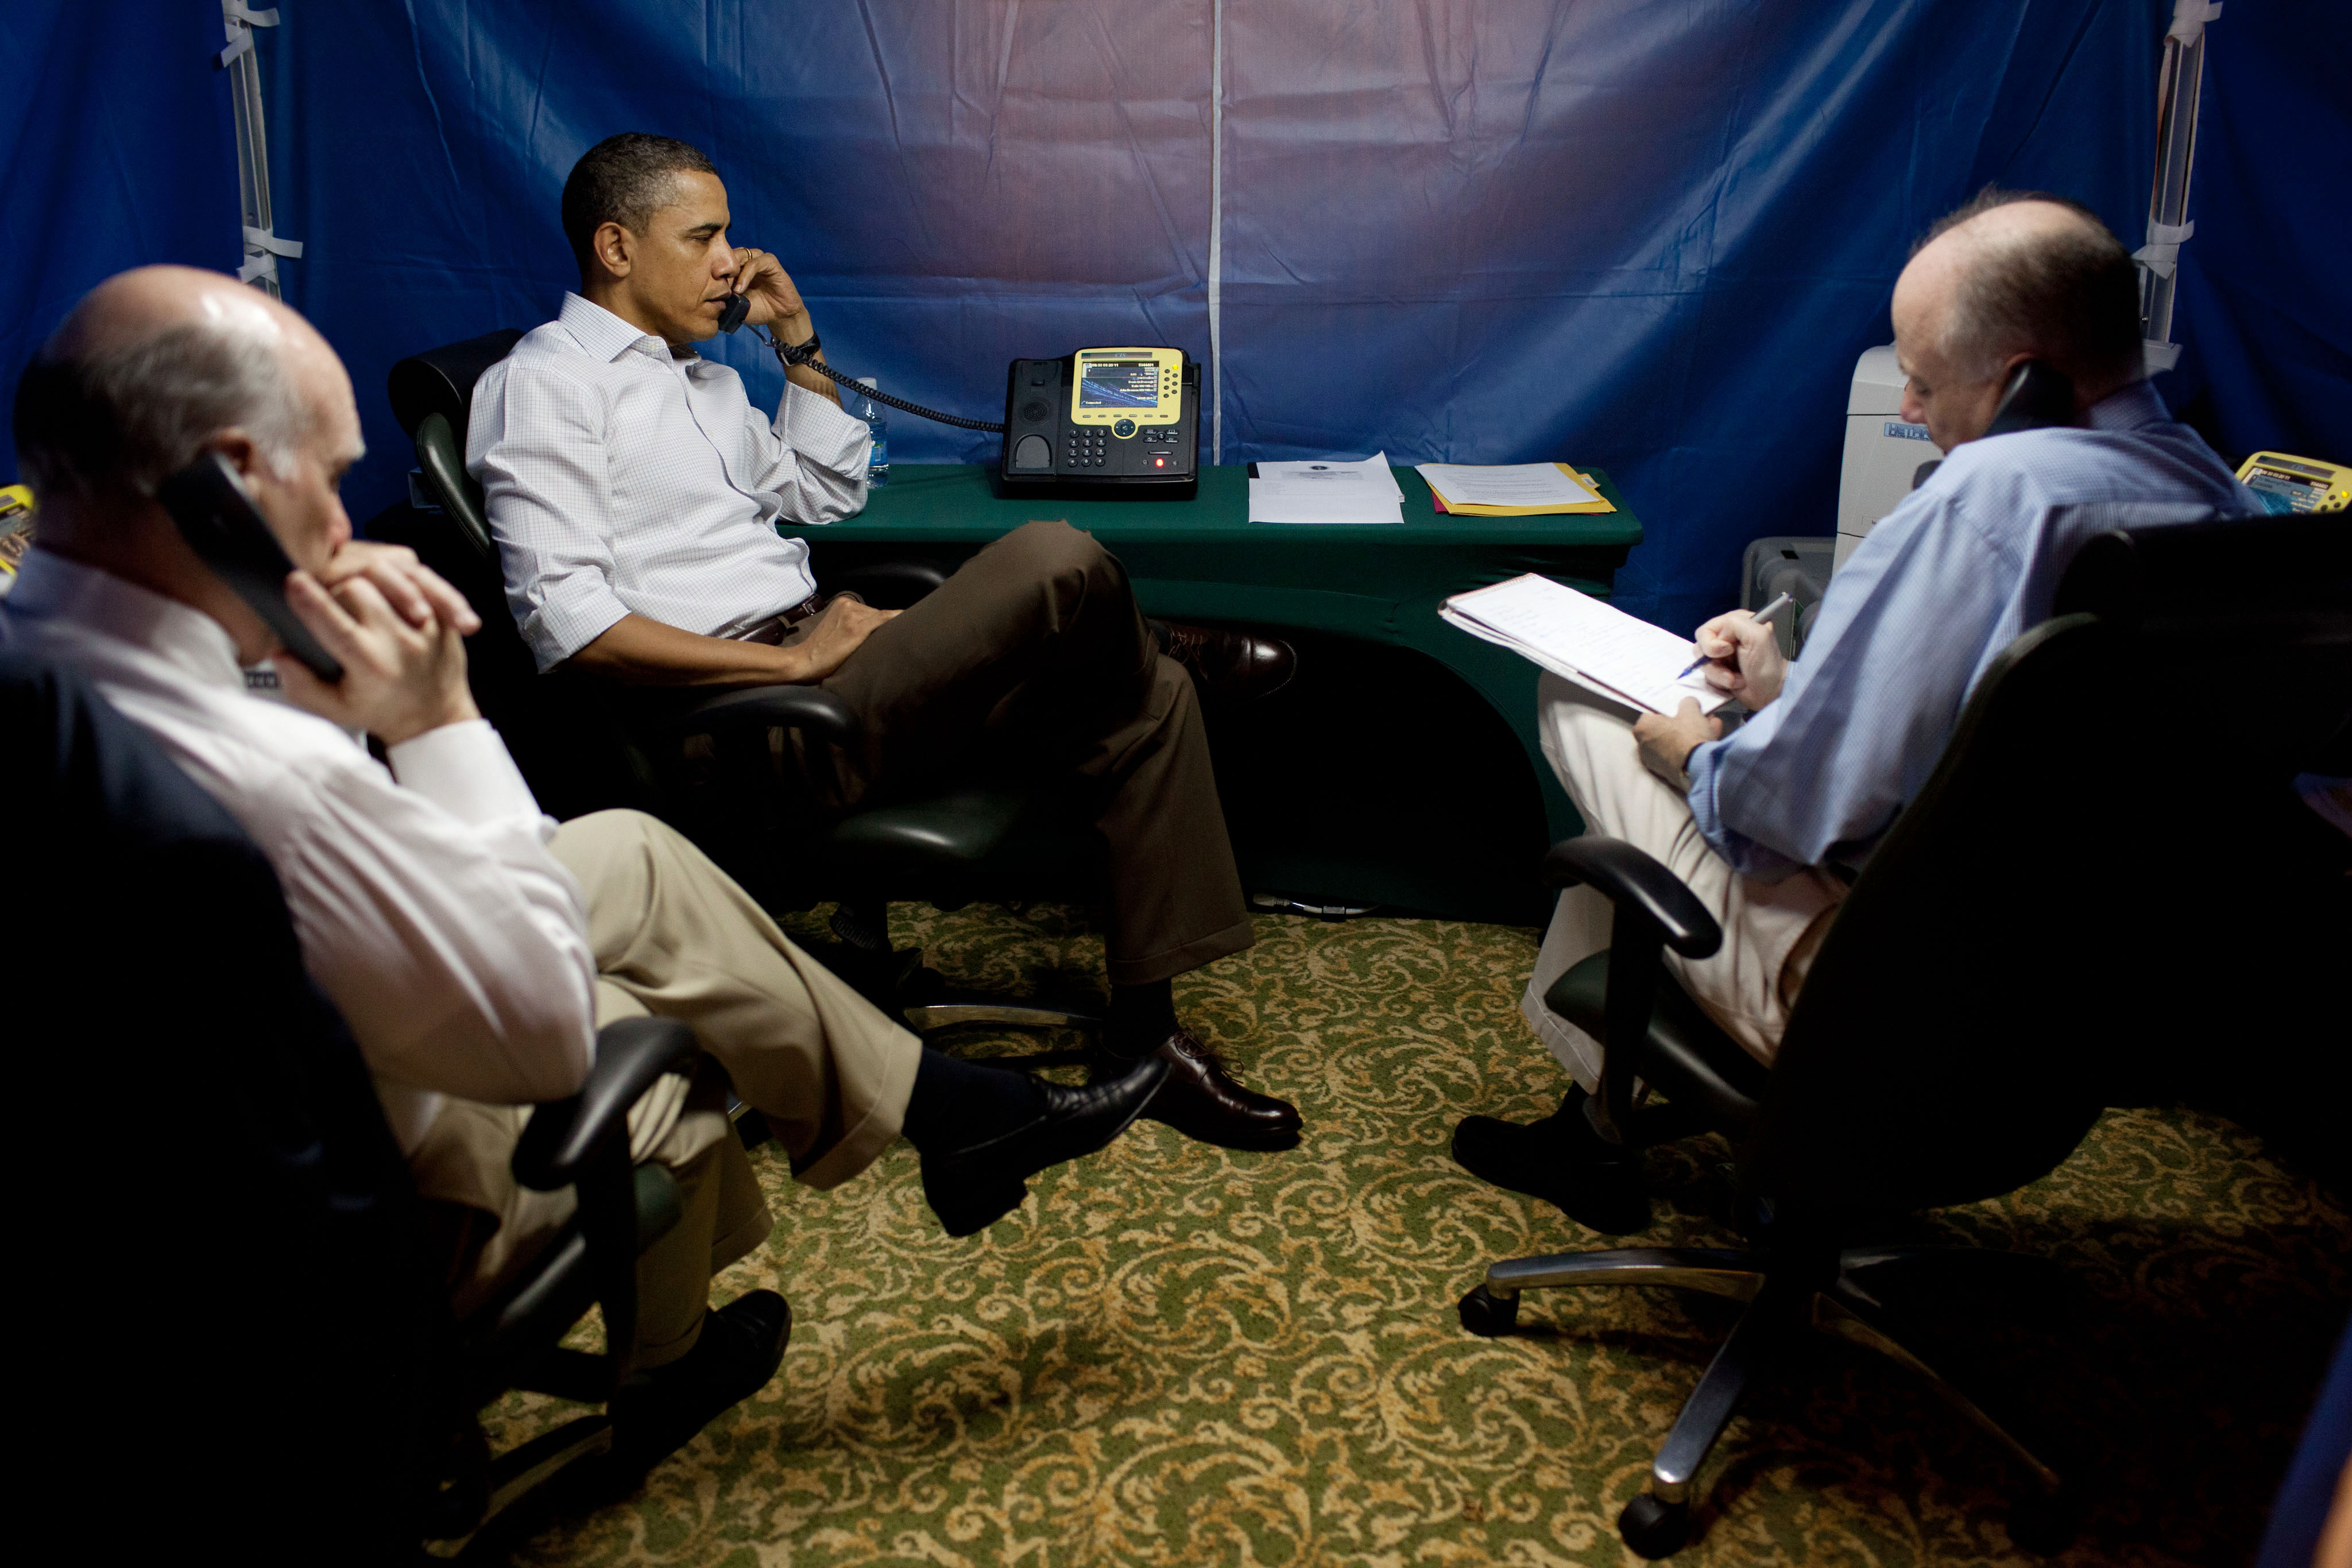 Obama briefed on Libya in Brazil